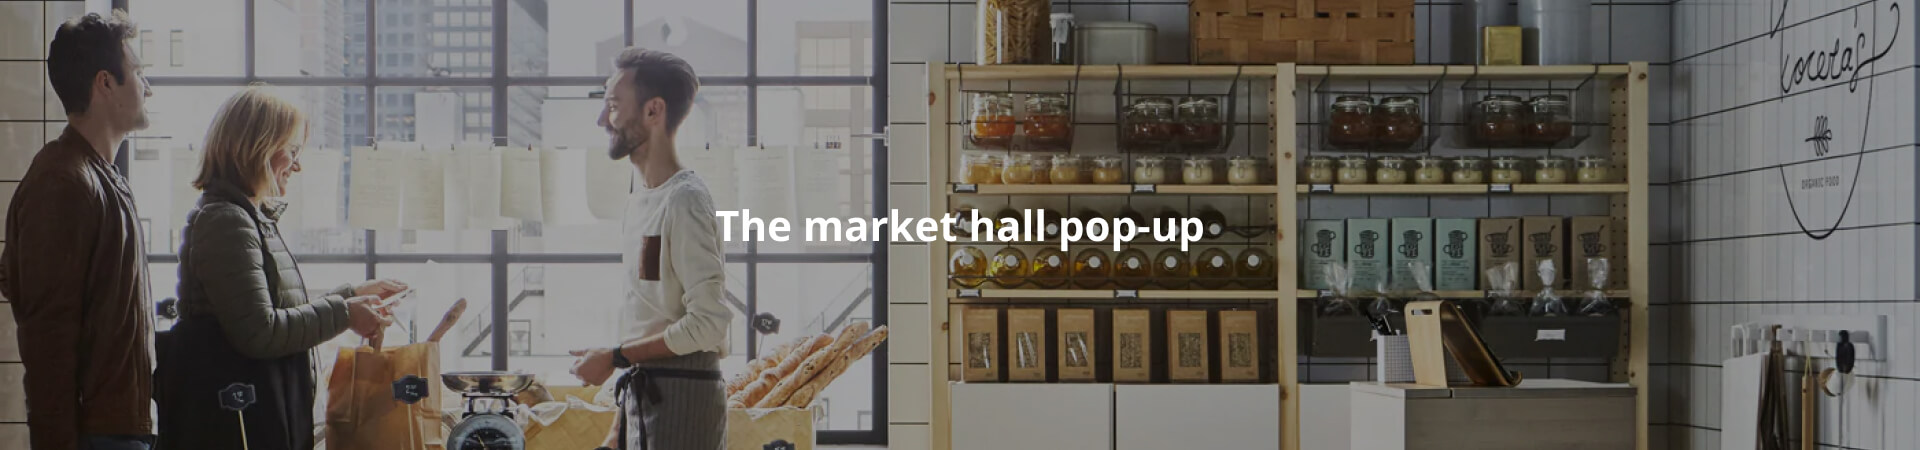 IKEA Business Inspirations - Market Hall